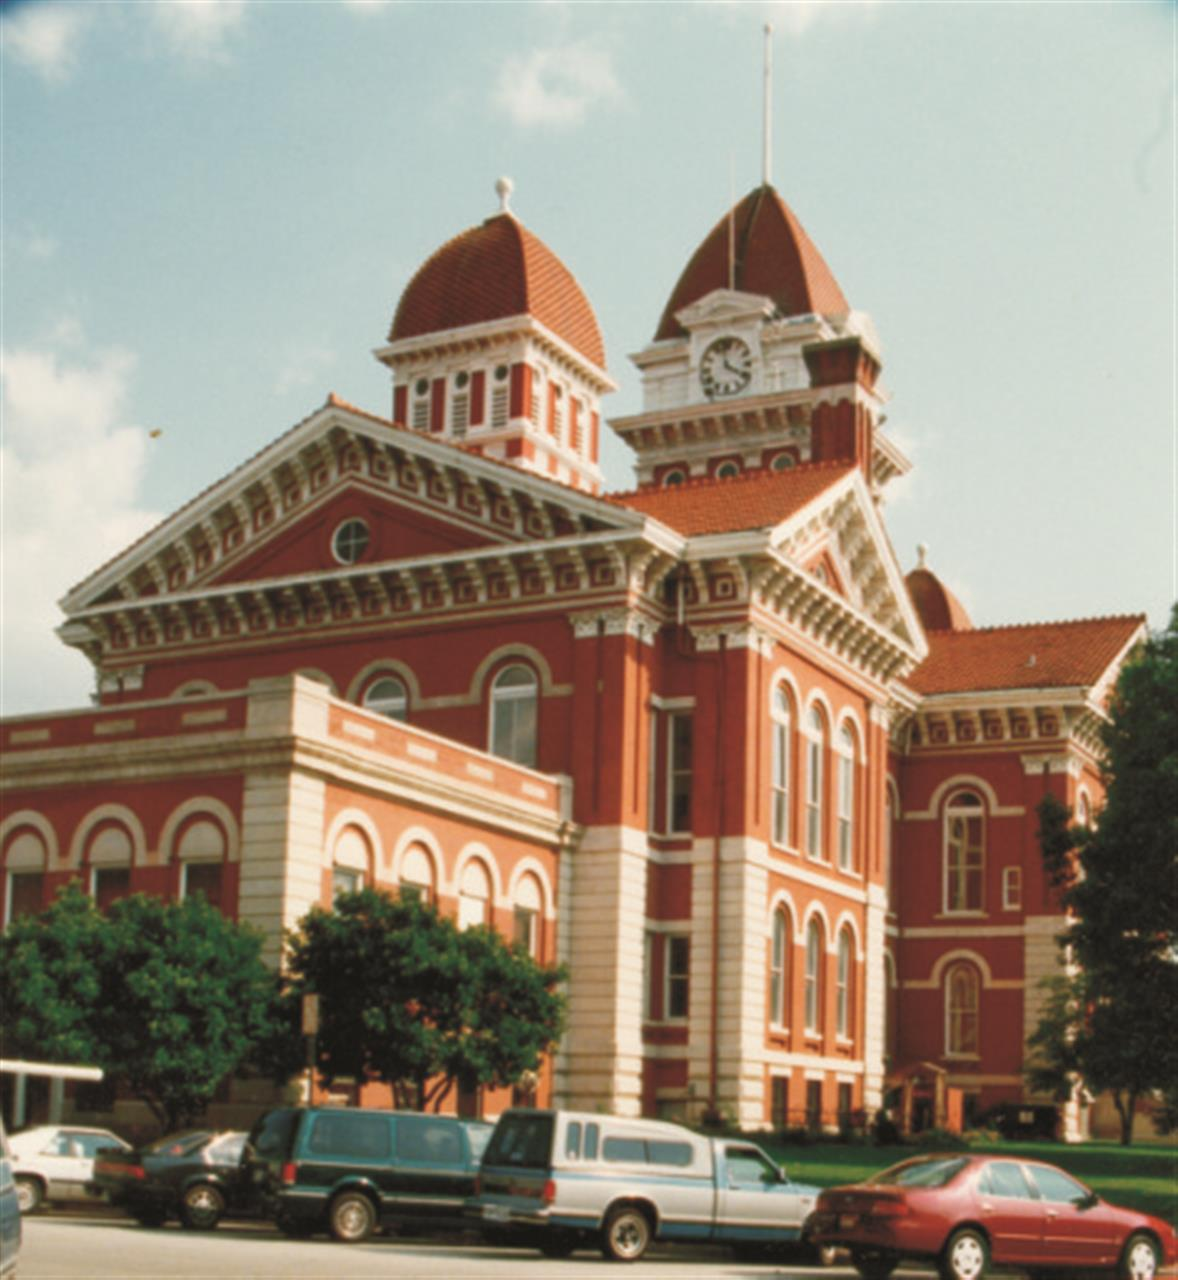 The Old Lake County Courthouse located in downtown Crown Point, Indiana.